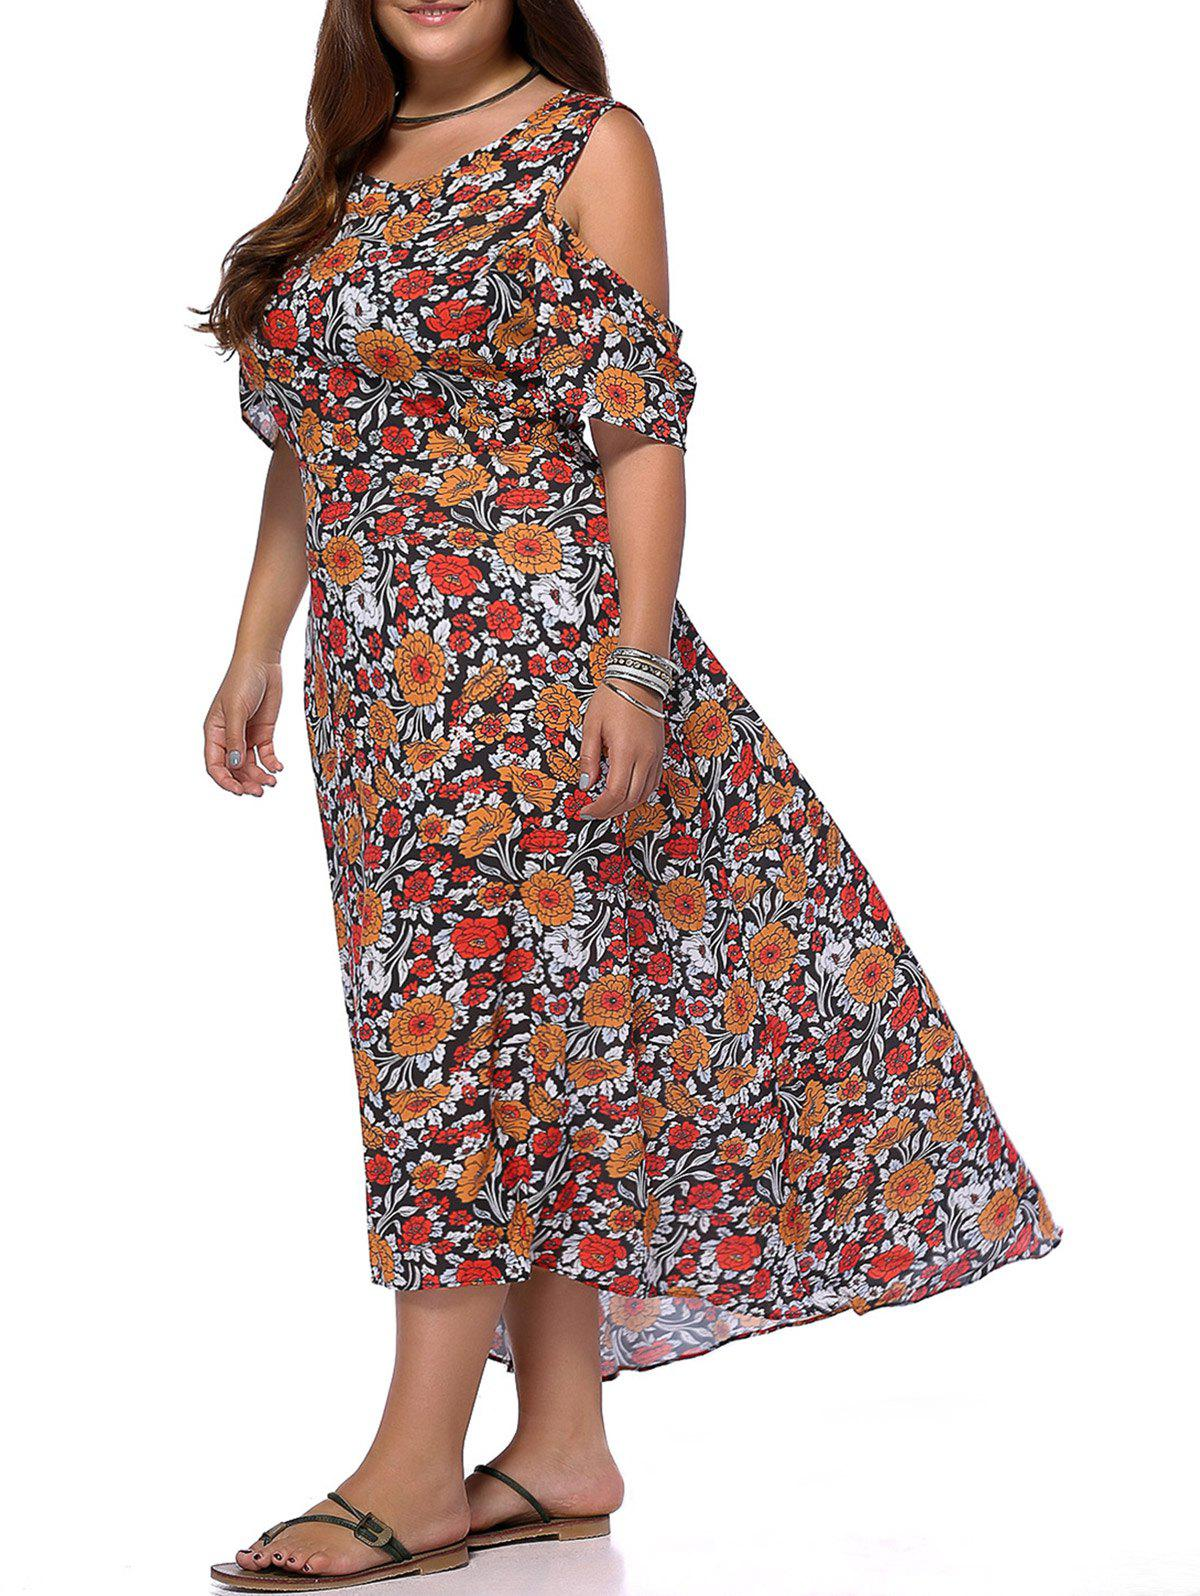 Chic Plus Size Cold Shoulder High Low Hem Women's Floral Print Dress - COLORMIX 5XL